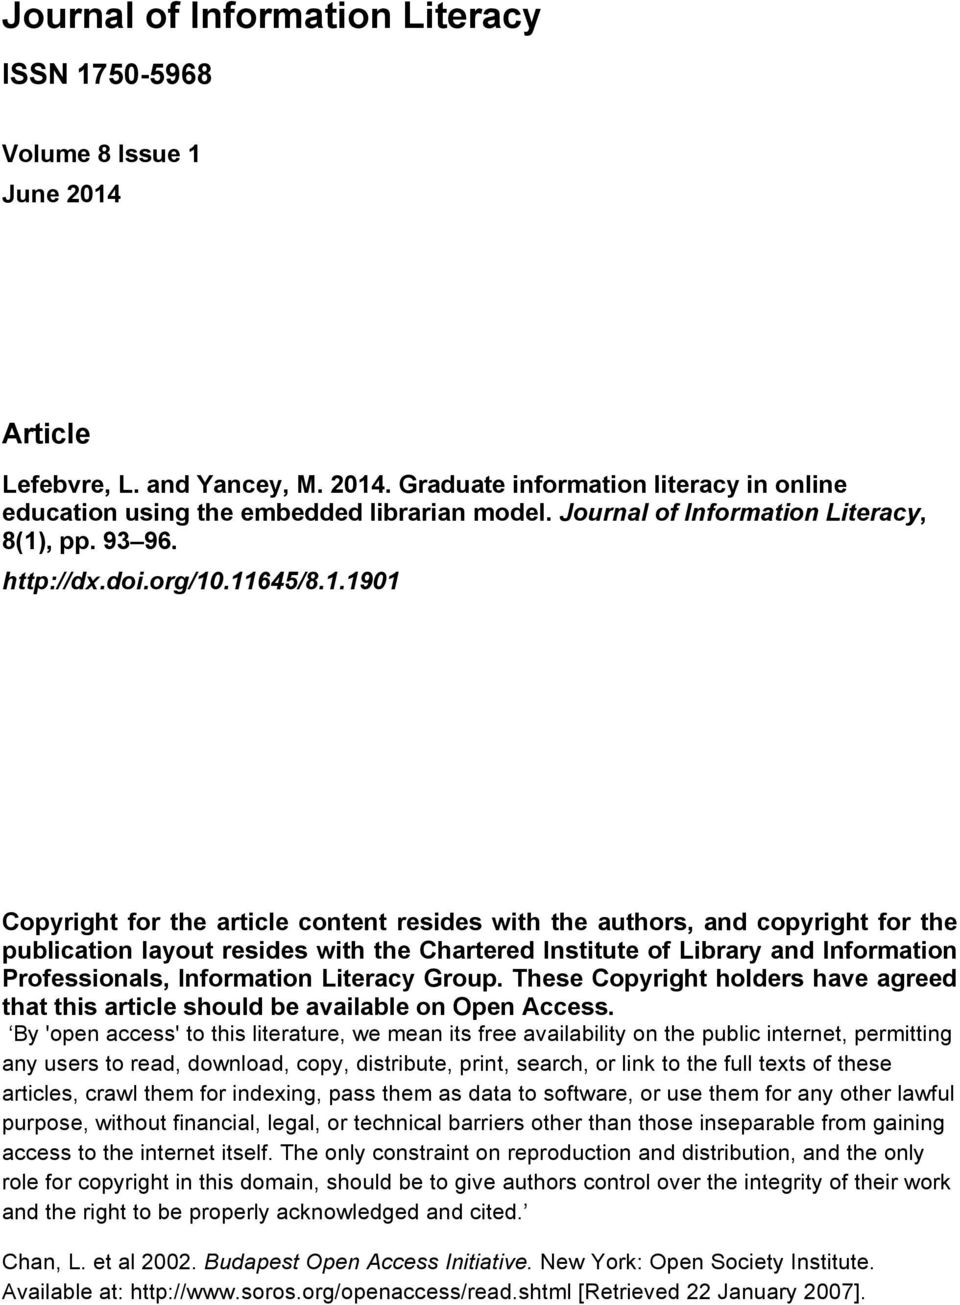 Copyright for the article content resides with the authors, and copyright for the publication layout resides with the Chartered Institute of Library and Information Professionals, Information